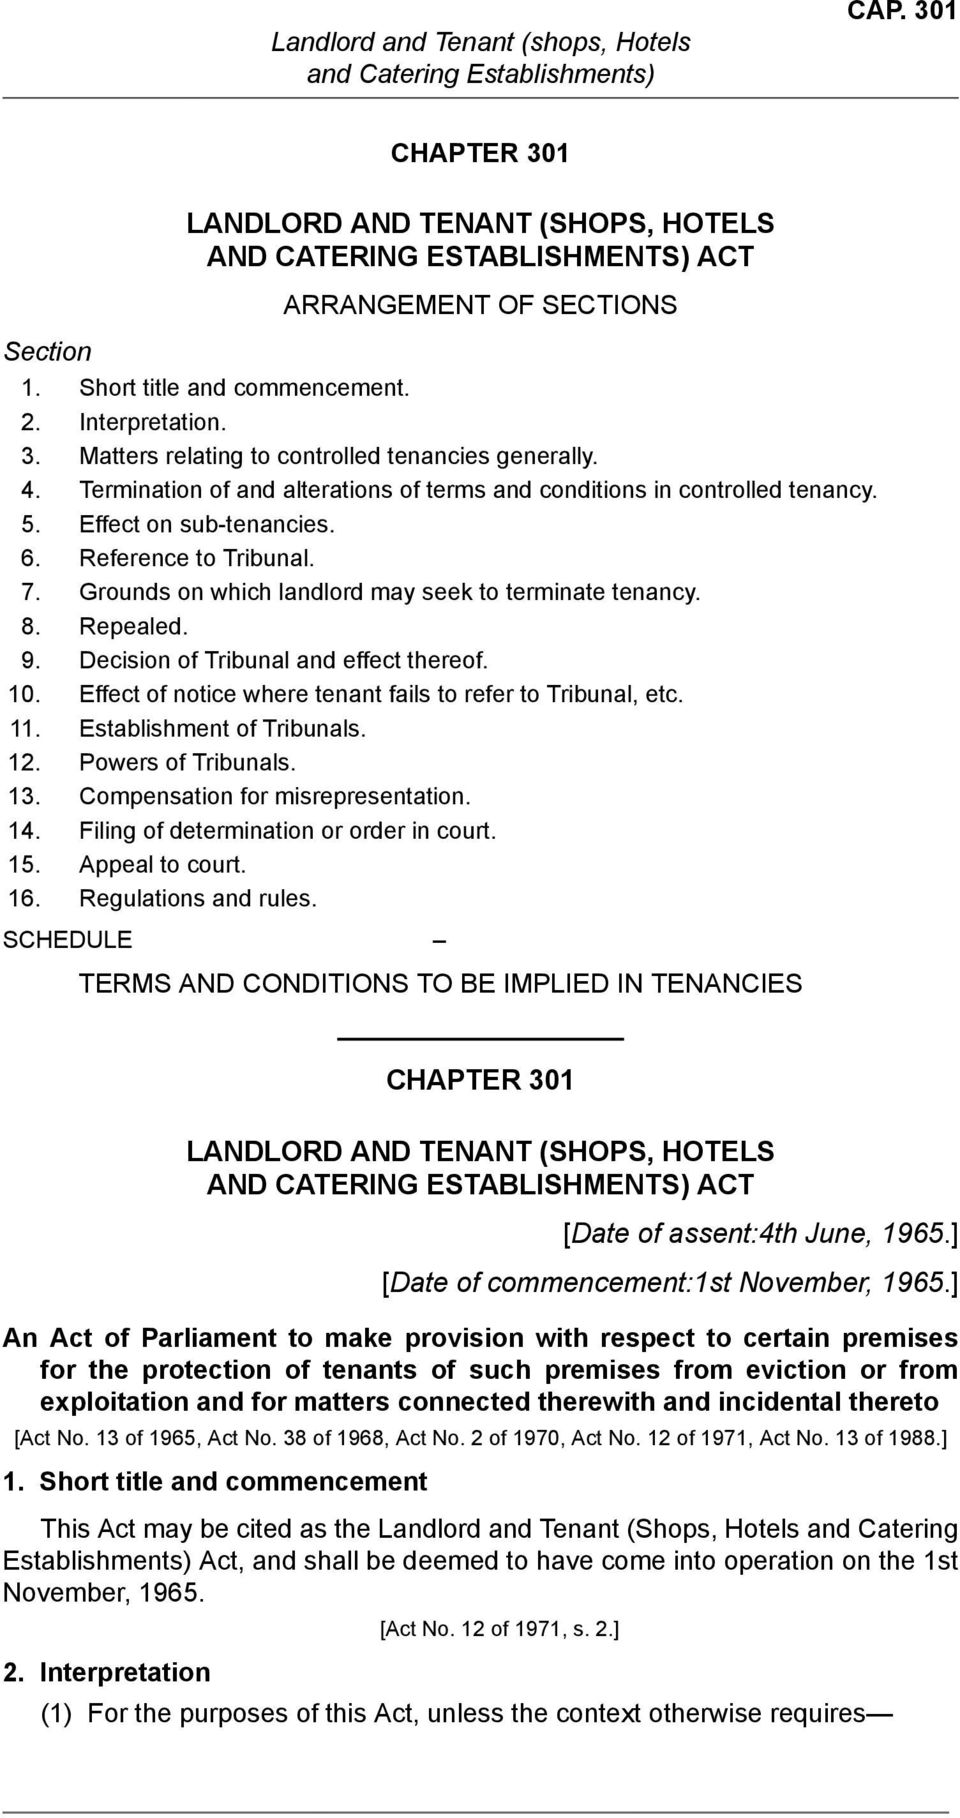 Repealed. 9. Decision of Tribunal and effect thereof. 10. Effect of notice where tenant fails to refer to Tribunal, etc. 11. Establishment of Tribunals. 12. Powers of Tribunals. 13.